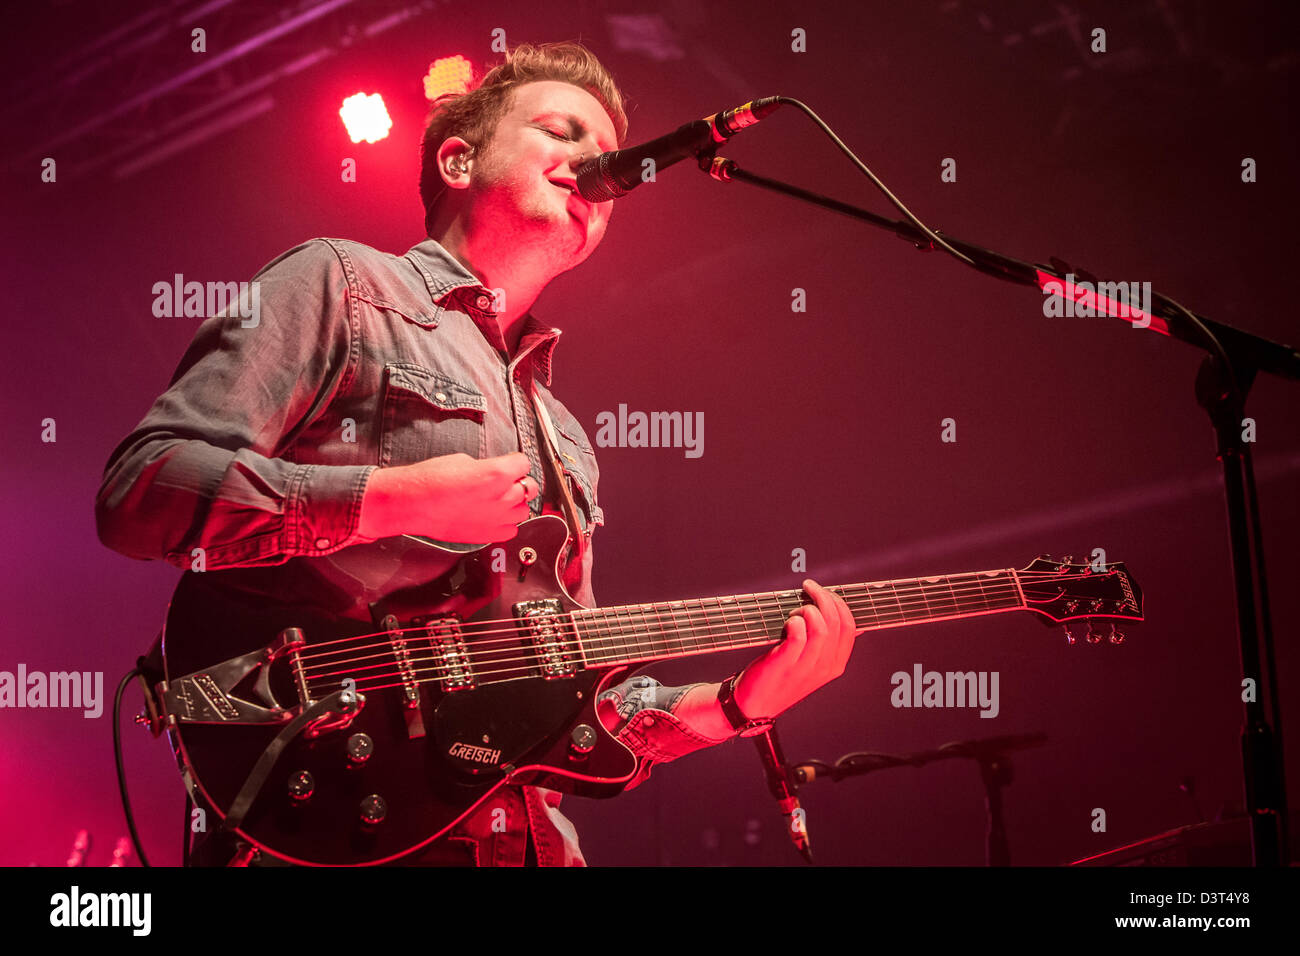 February 22, 2013 - The Irish indie rock band Two Door Cinema Club performs at the Magazzini Generali, Milan, Italy - Stock Image